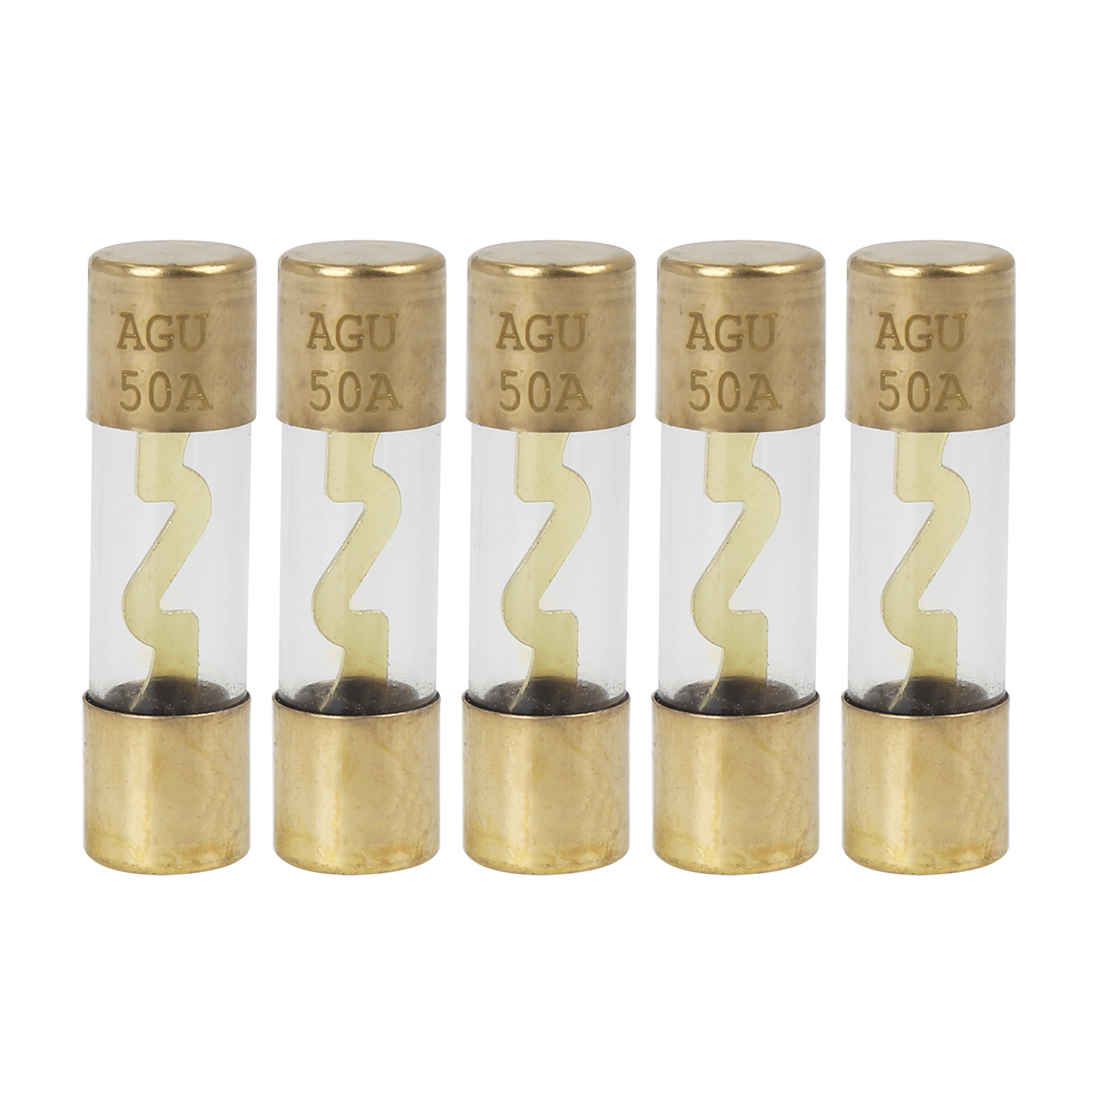 5pcs 50 Amp AGU Fuse Gold Tone Plated for Car Audio Video Stereo